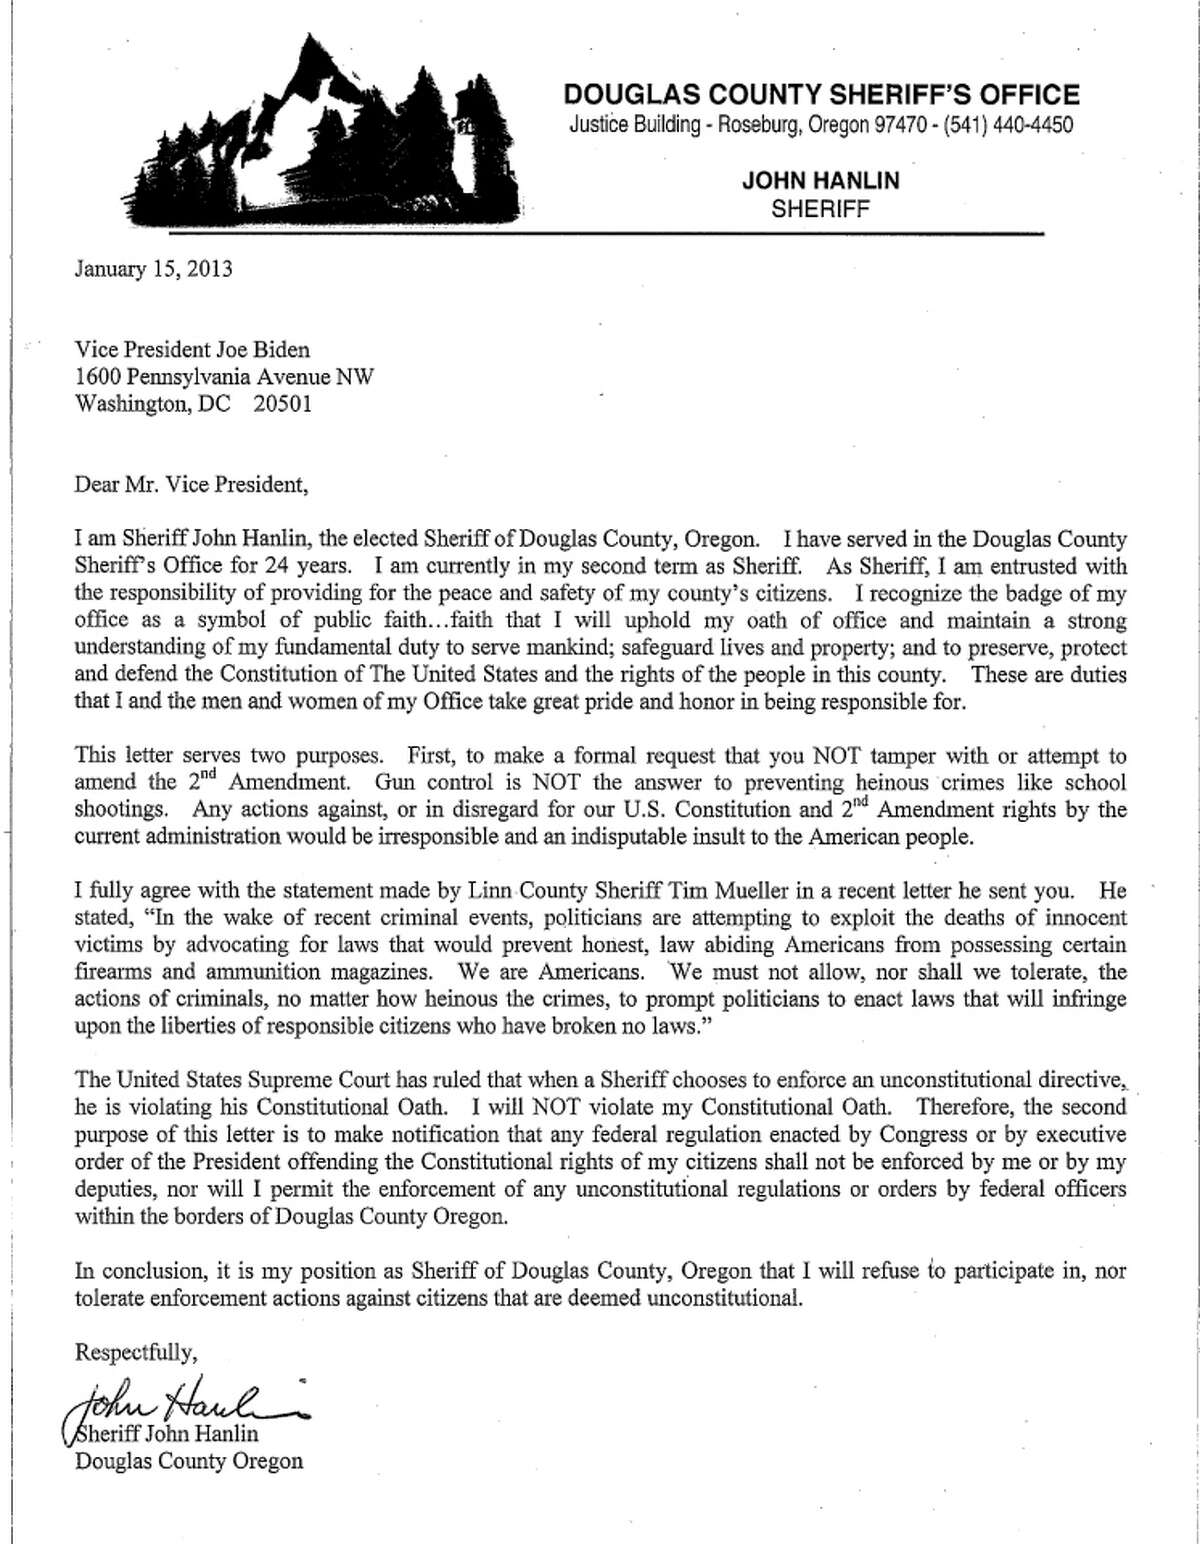 A month after 20 children and six staff members were killed at Sandy Hook Elementary, Douglas County Sheriff John Hanlin wrote this Jan. 13, 2013, letter to Vice President Joe Biden. It it, Hanlin threatened to obstruct federal agents if they attempted to enforce new gun laws in his jurisdiction.